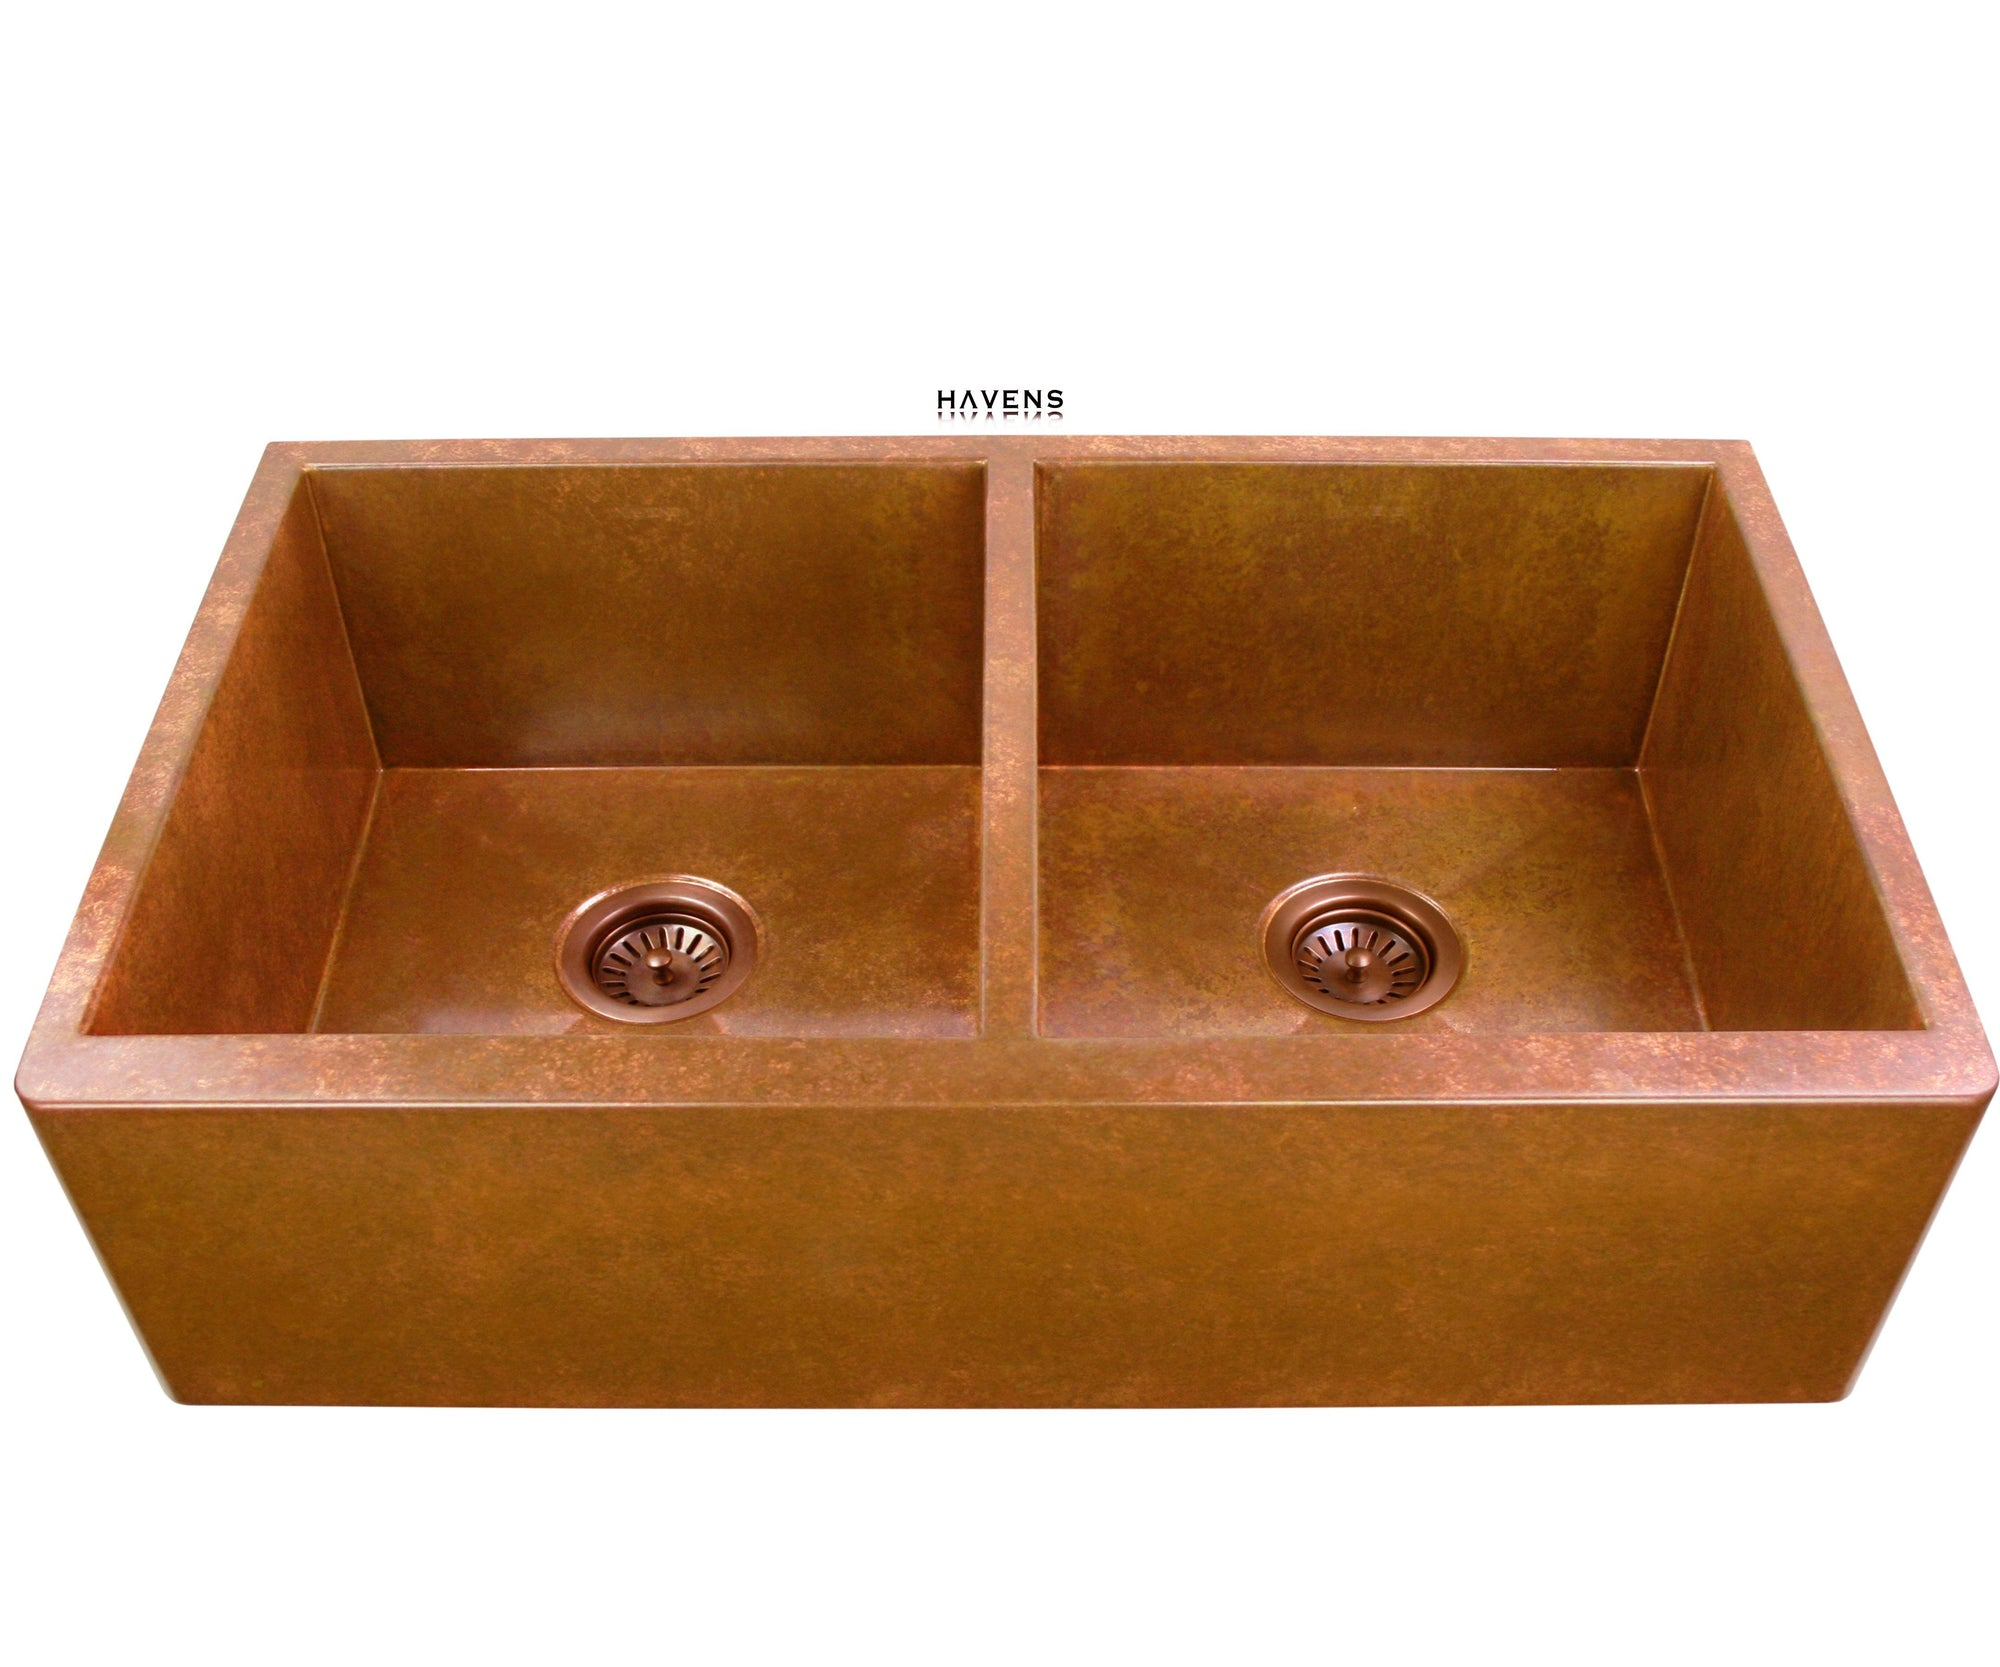 Double bowl copper farmhouse sink with two basins and a built in ledge for advanced utility.